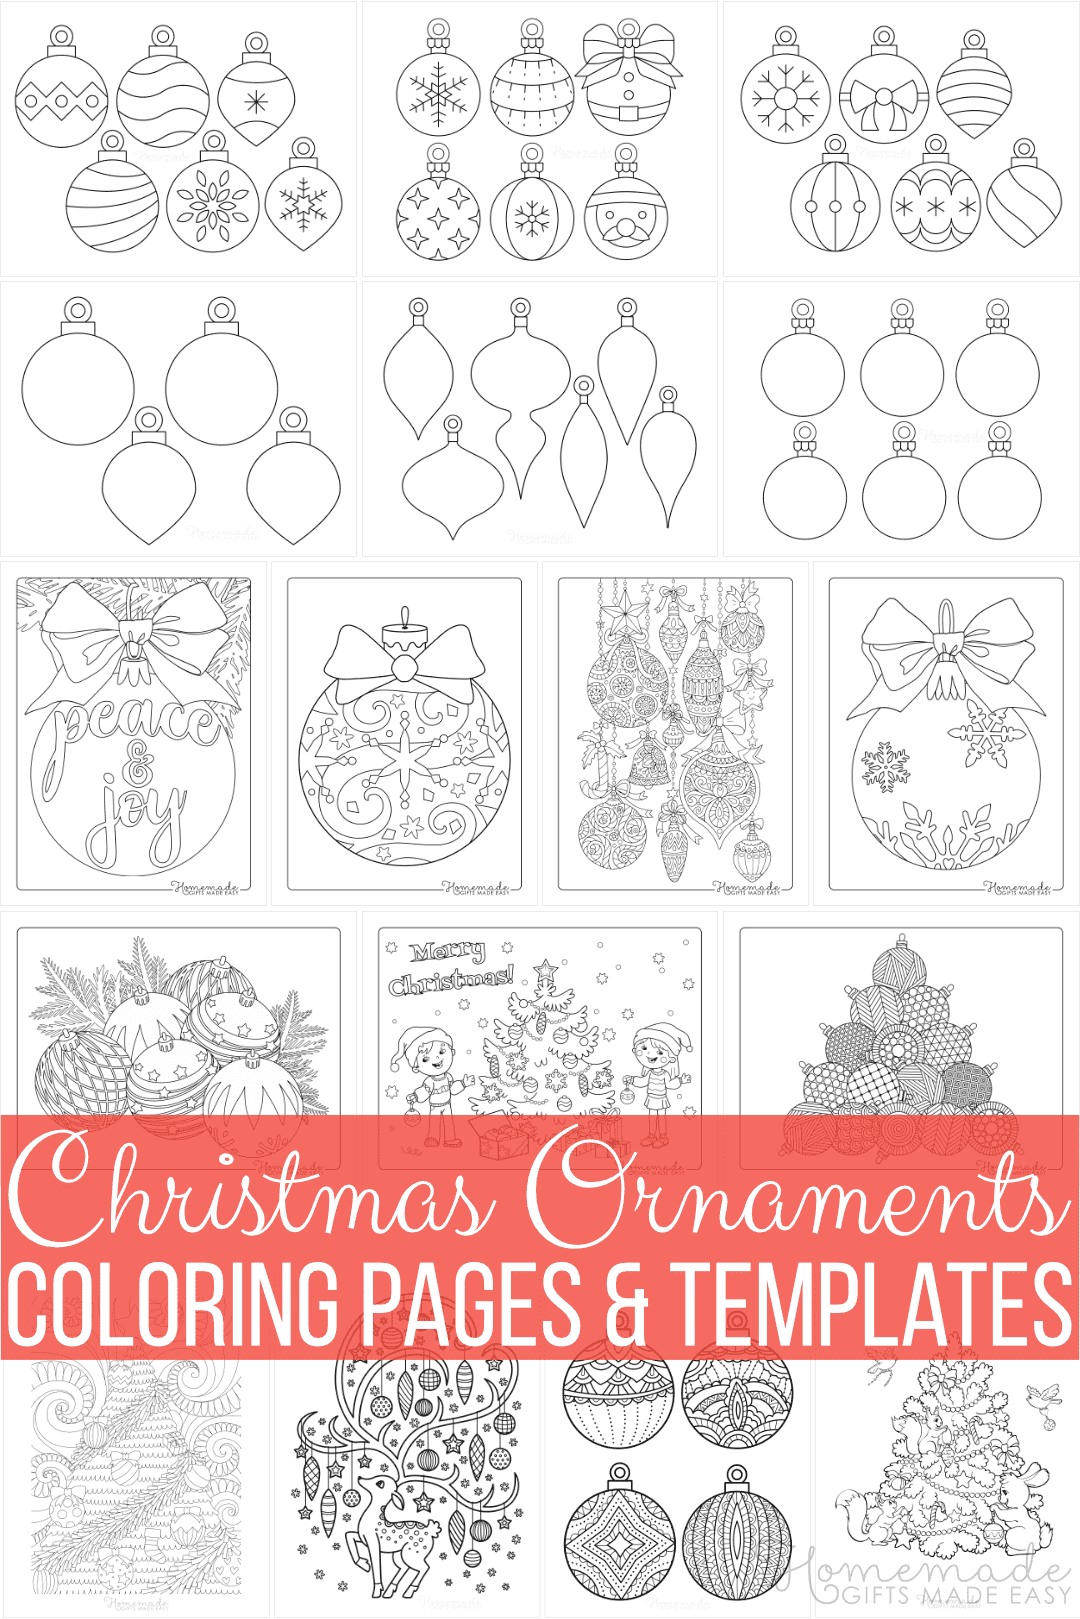 Printable Christmas Ornaments Coloring Pages and Templates